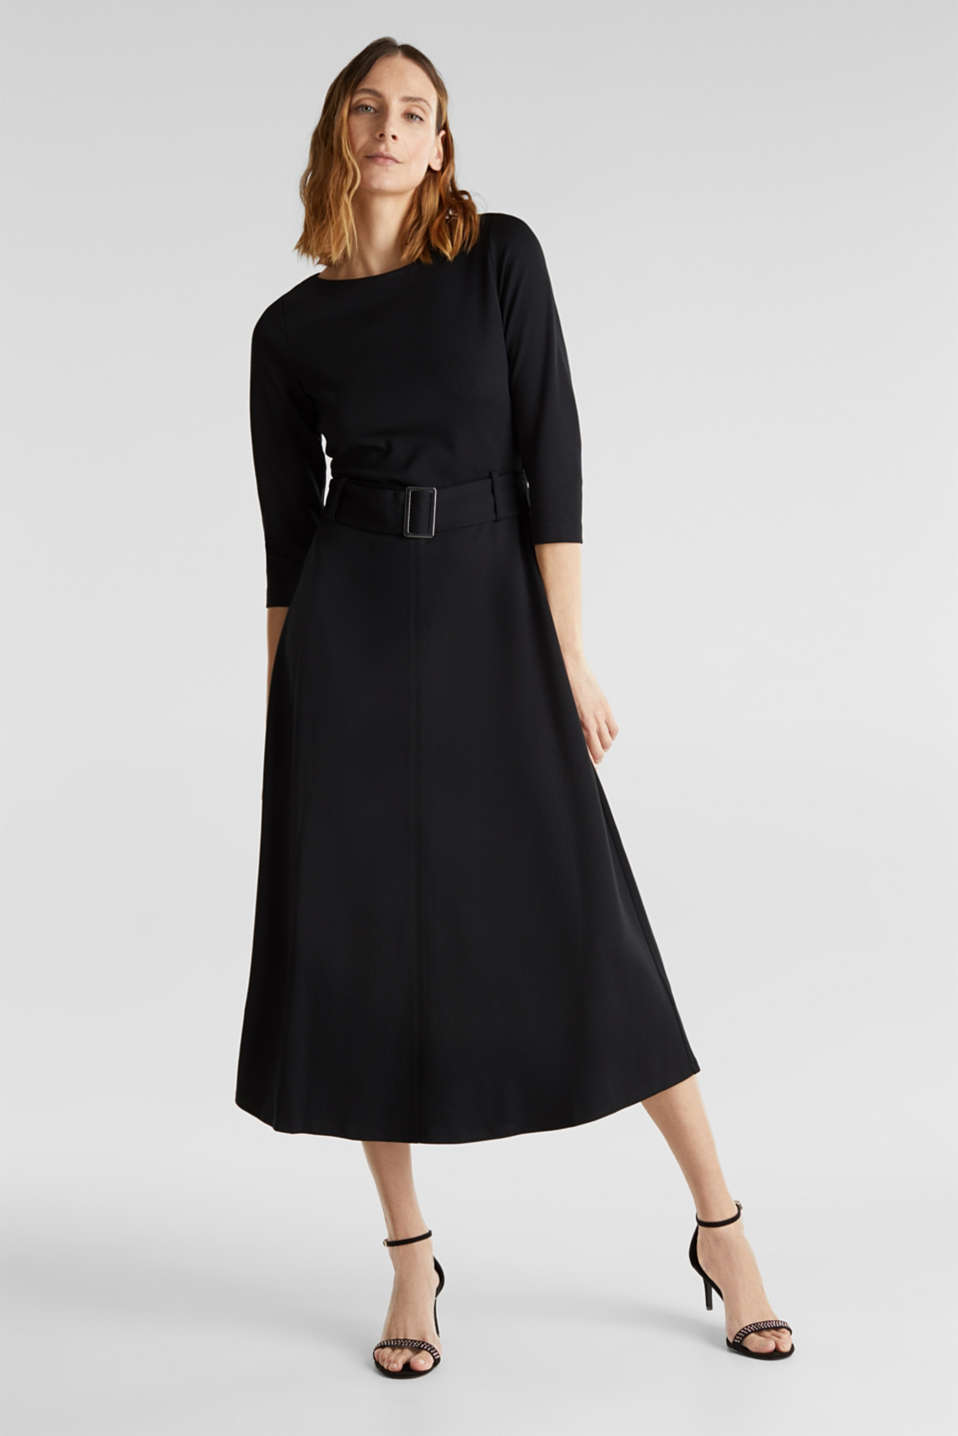 Esprit - Stretch jersey dress with a belt